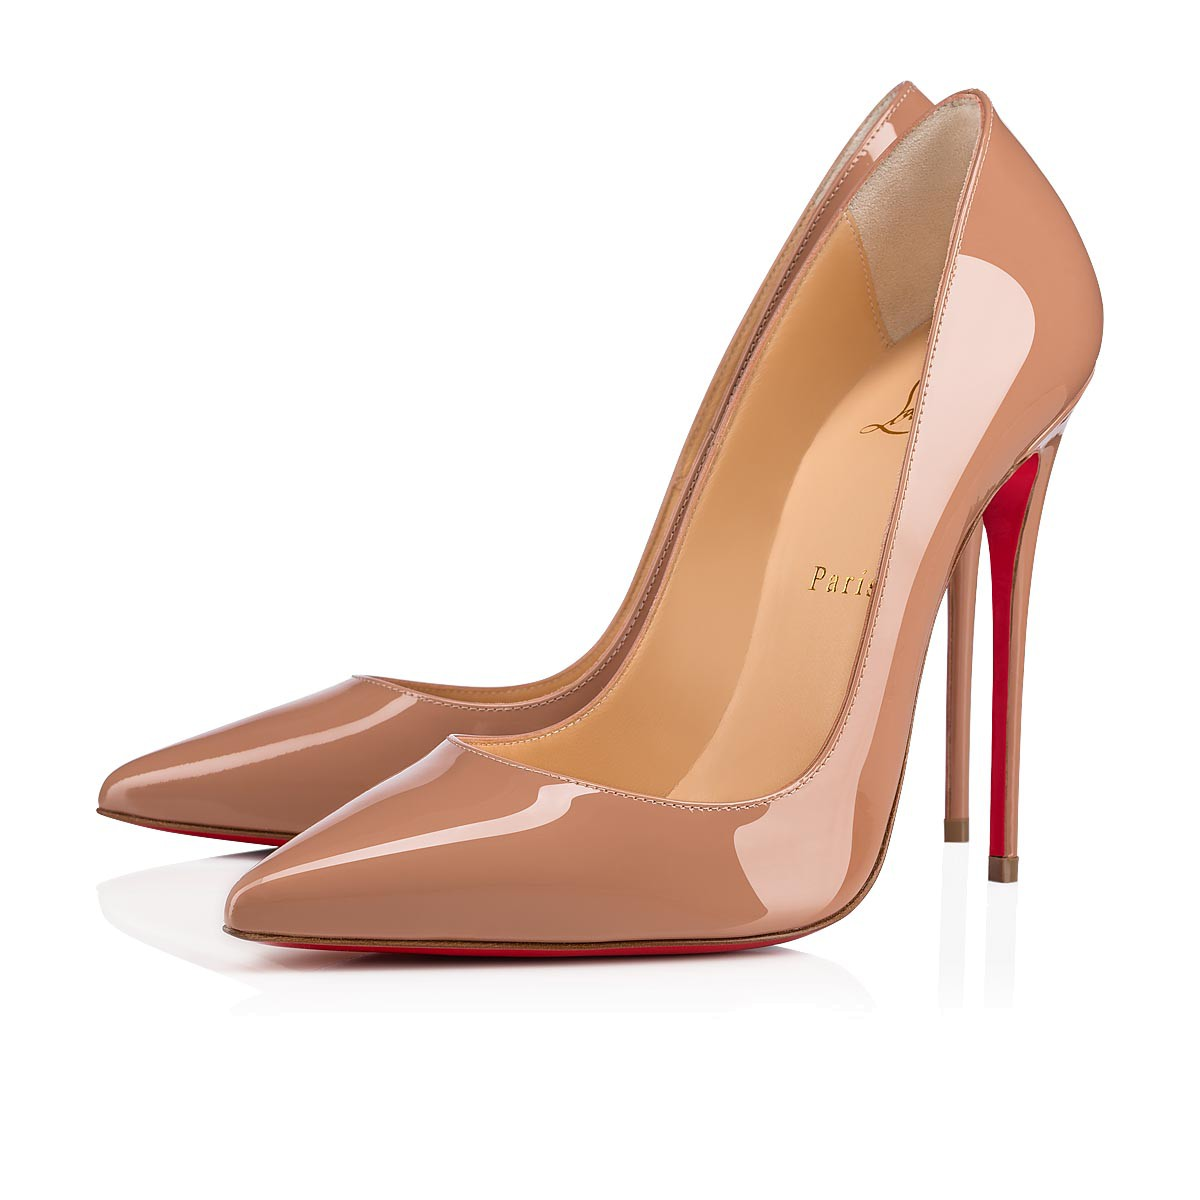 109714b94dd So Kate 120 Nude Patent Leather - Women Shoes - Christian Louboutin